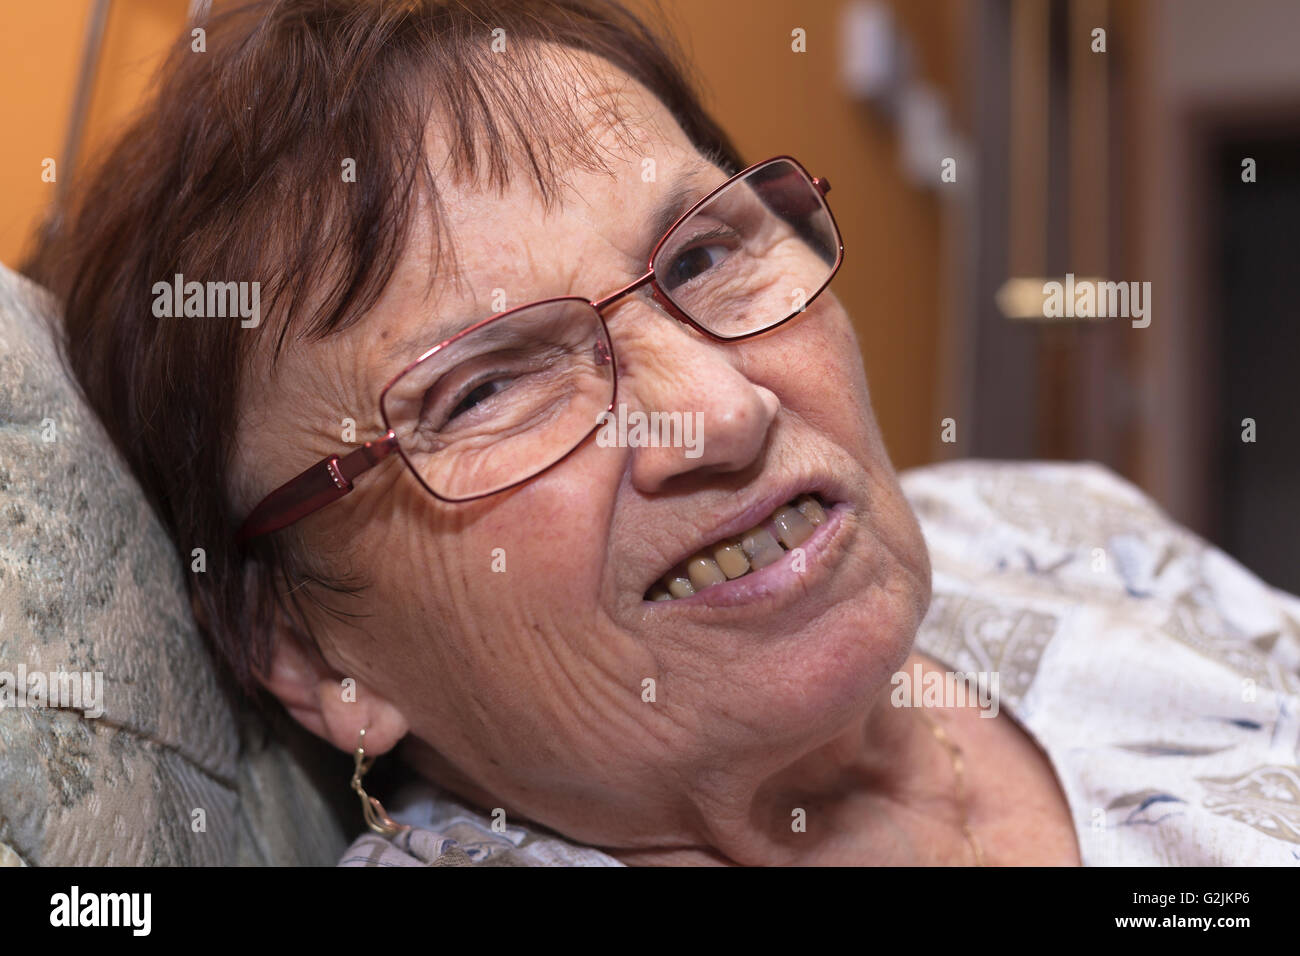 Closeup of a senior woman grimacing and frowning. - Stock Image